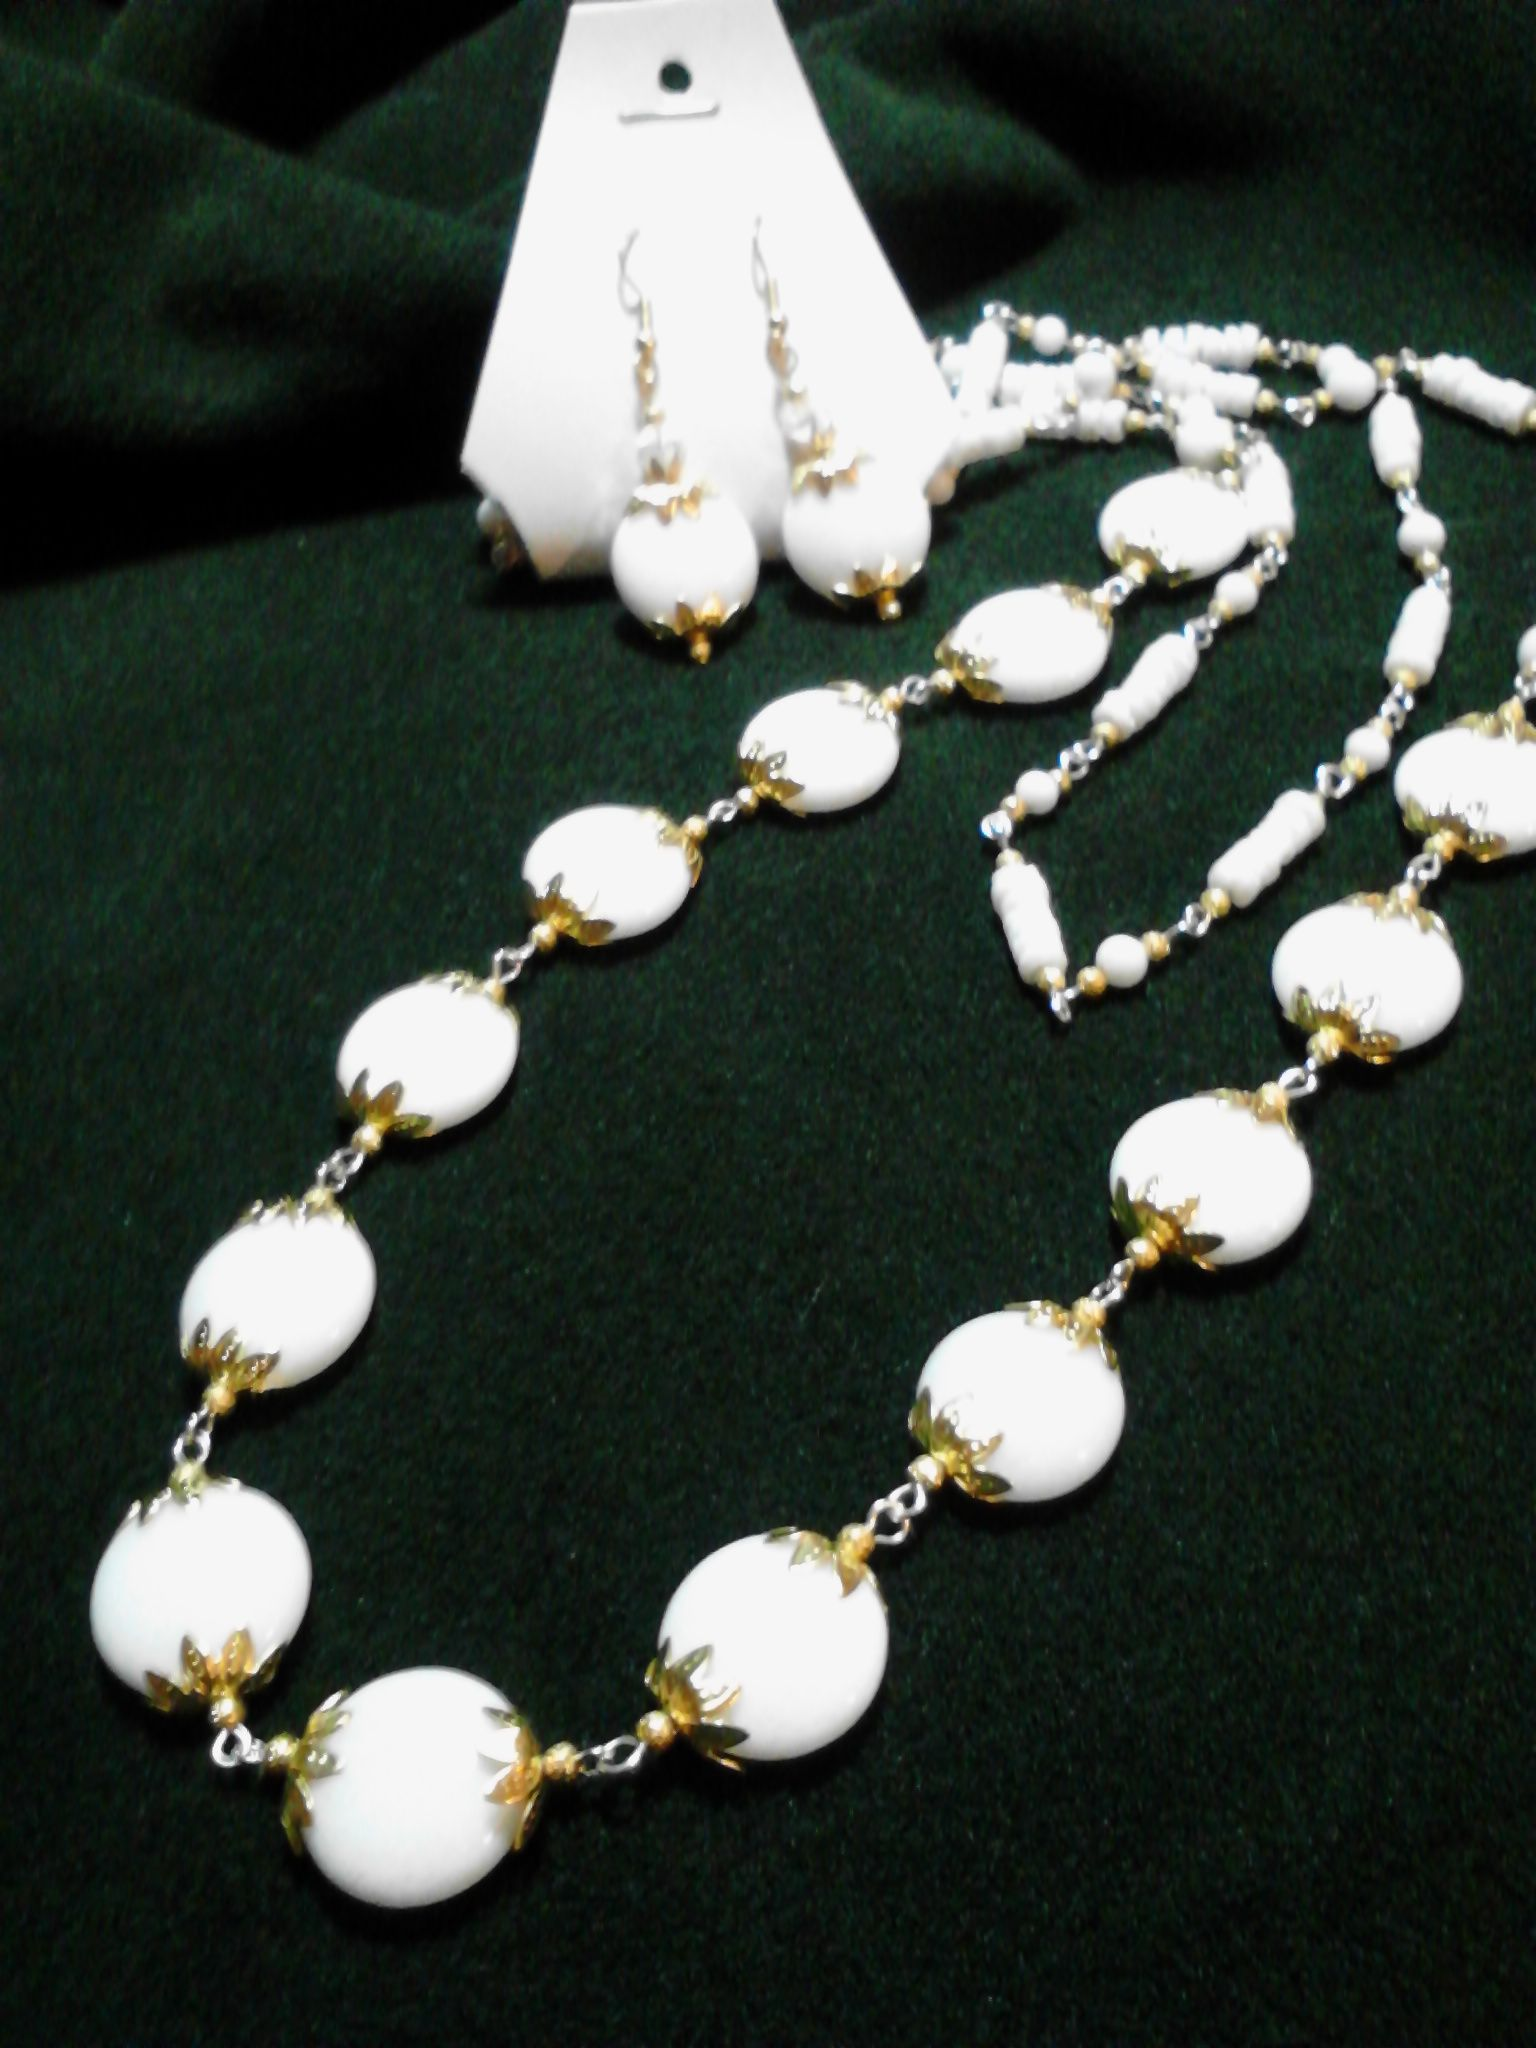 White glass beads with gold accents long necklace and earrings set